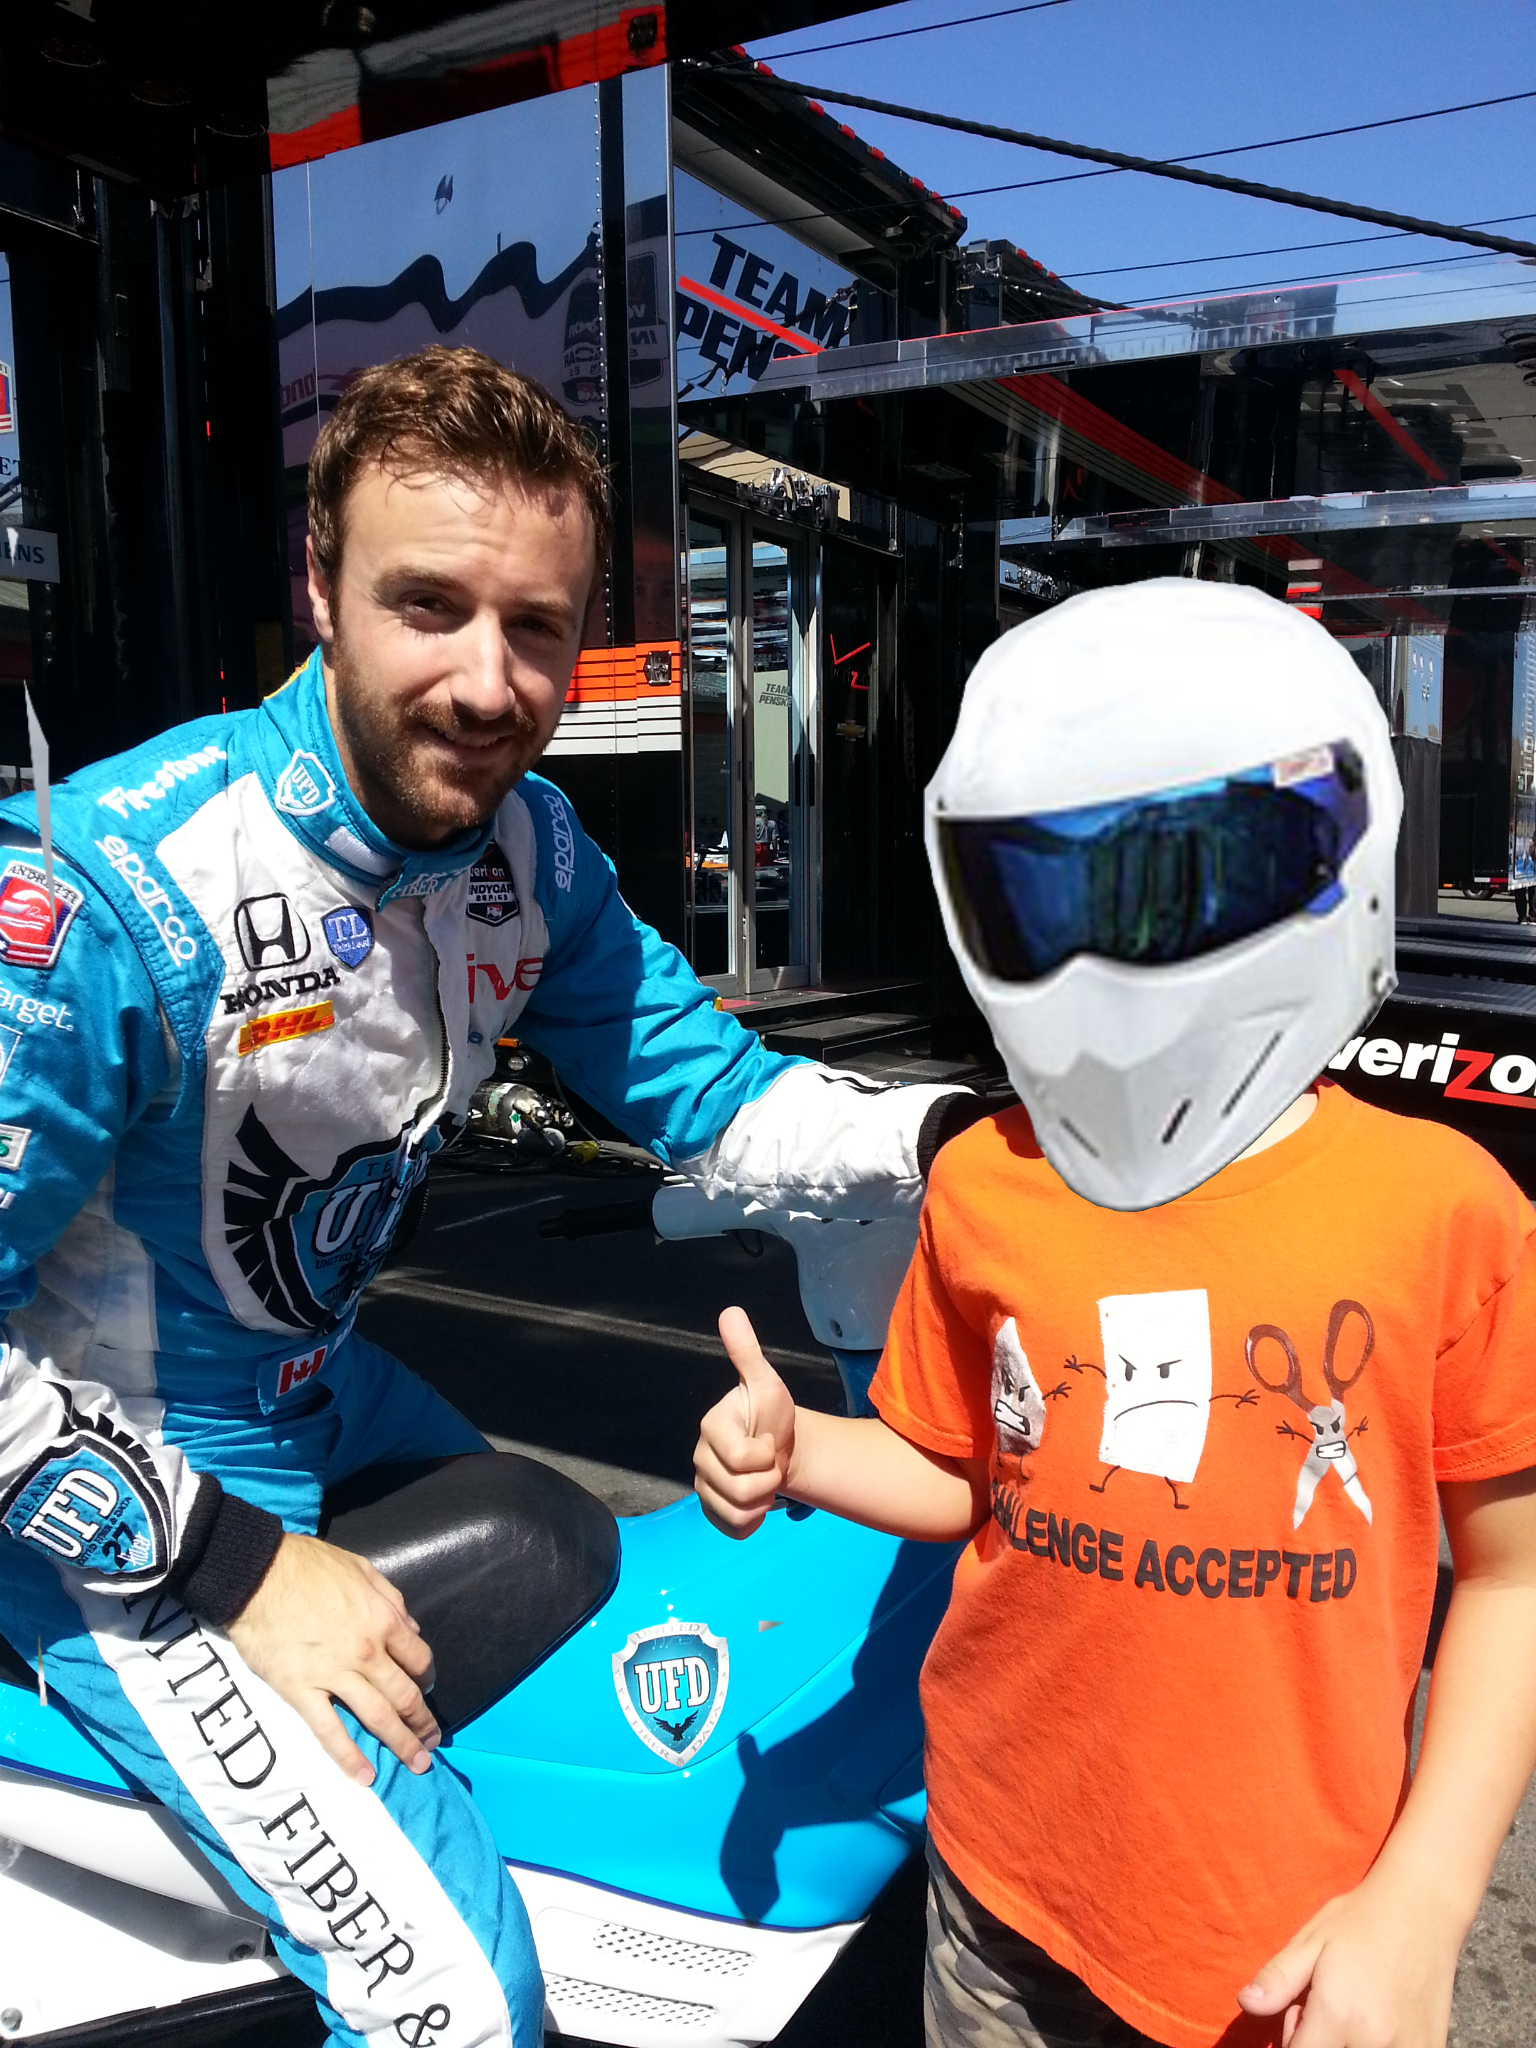 Hinchcliffe hanging out with TLP spawn.